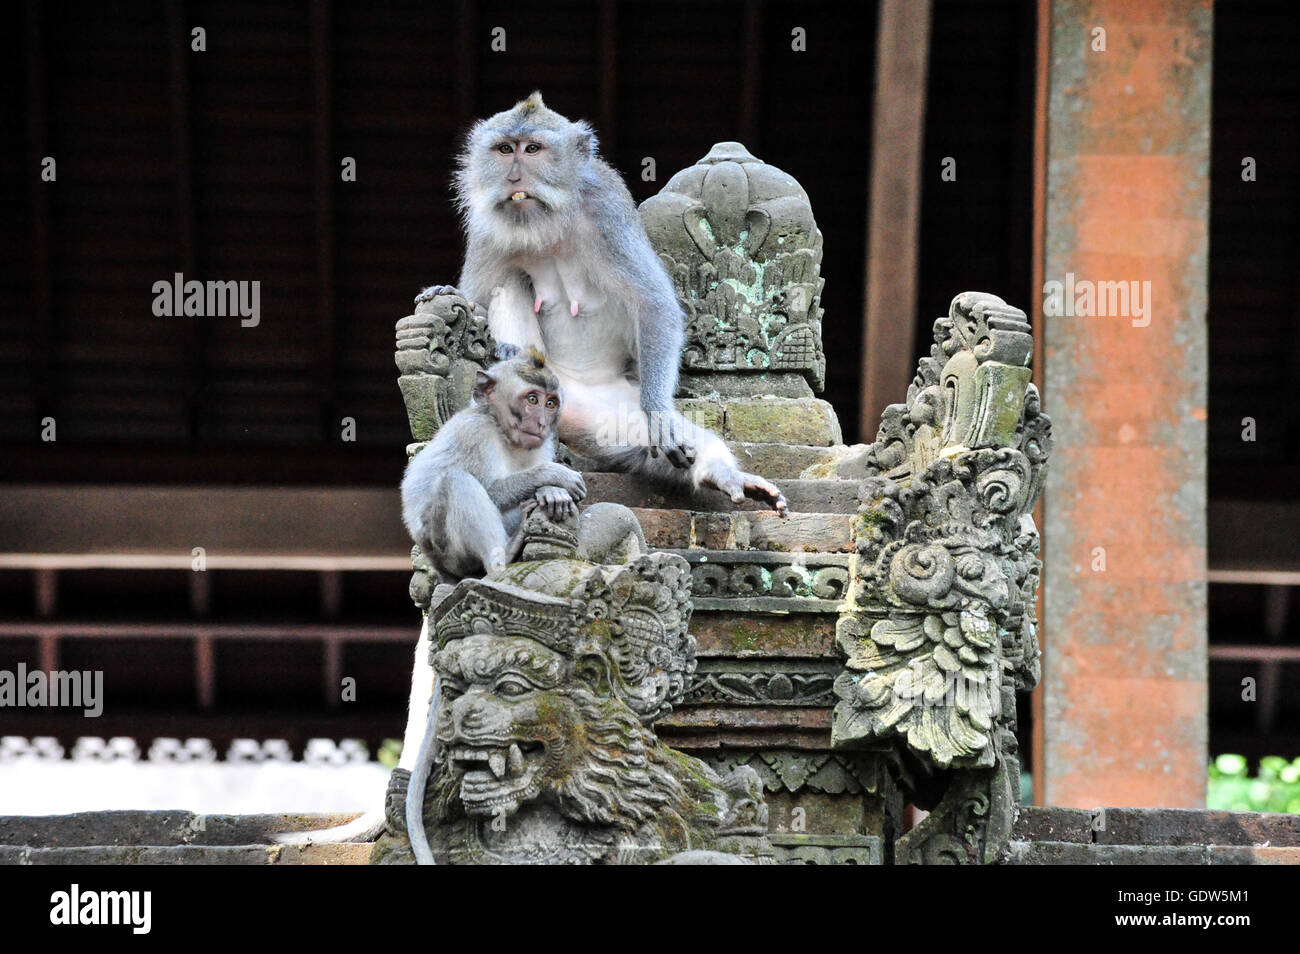 Two maqaque monkey sitting on the temple stairs and protecting it from visitors in Bali Sacred Monkey Forest - Stock Image